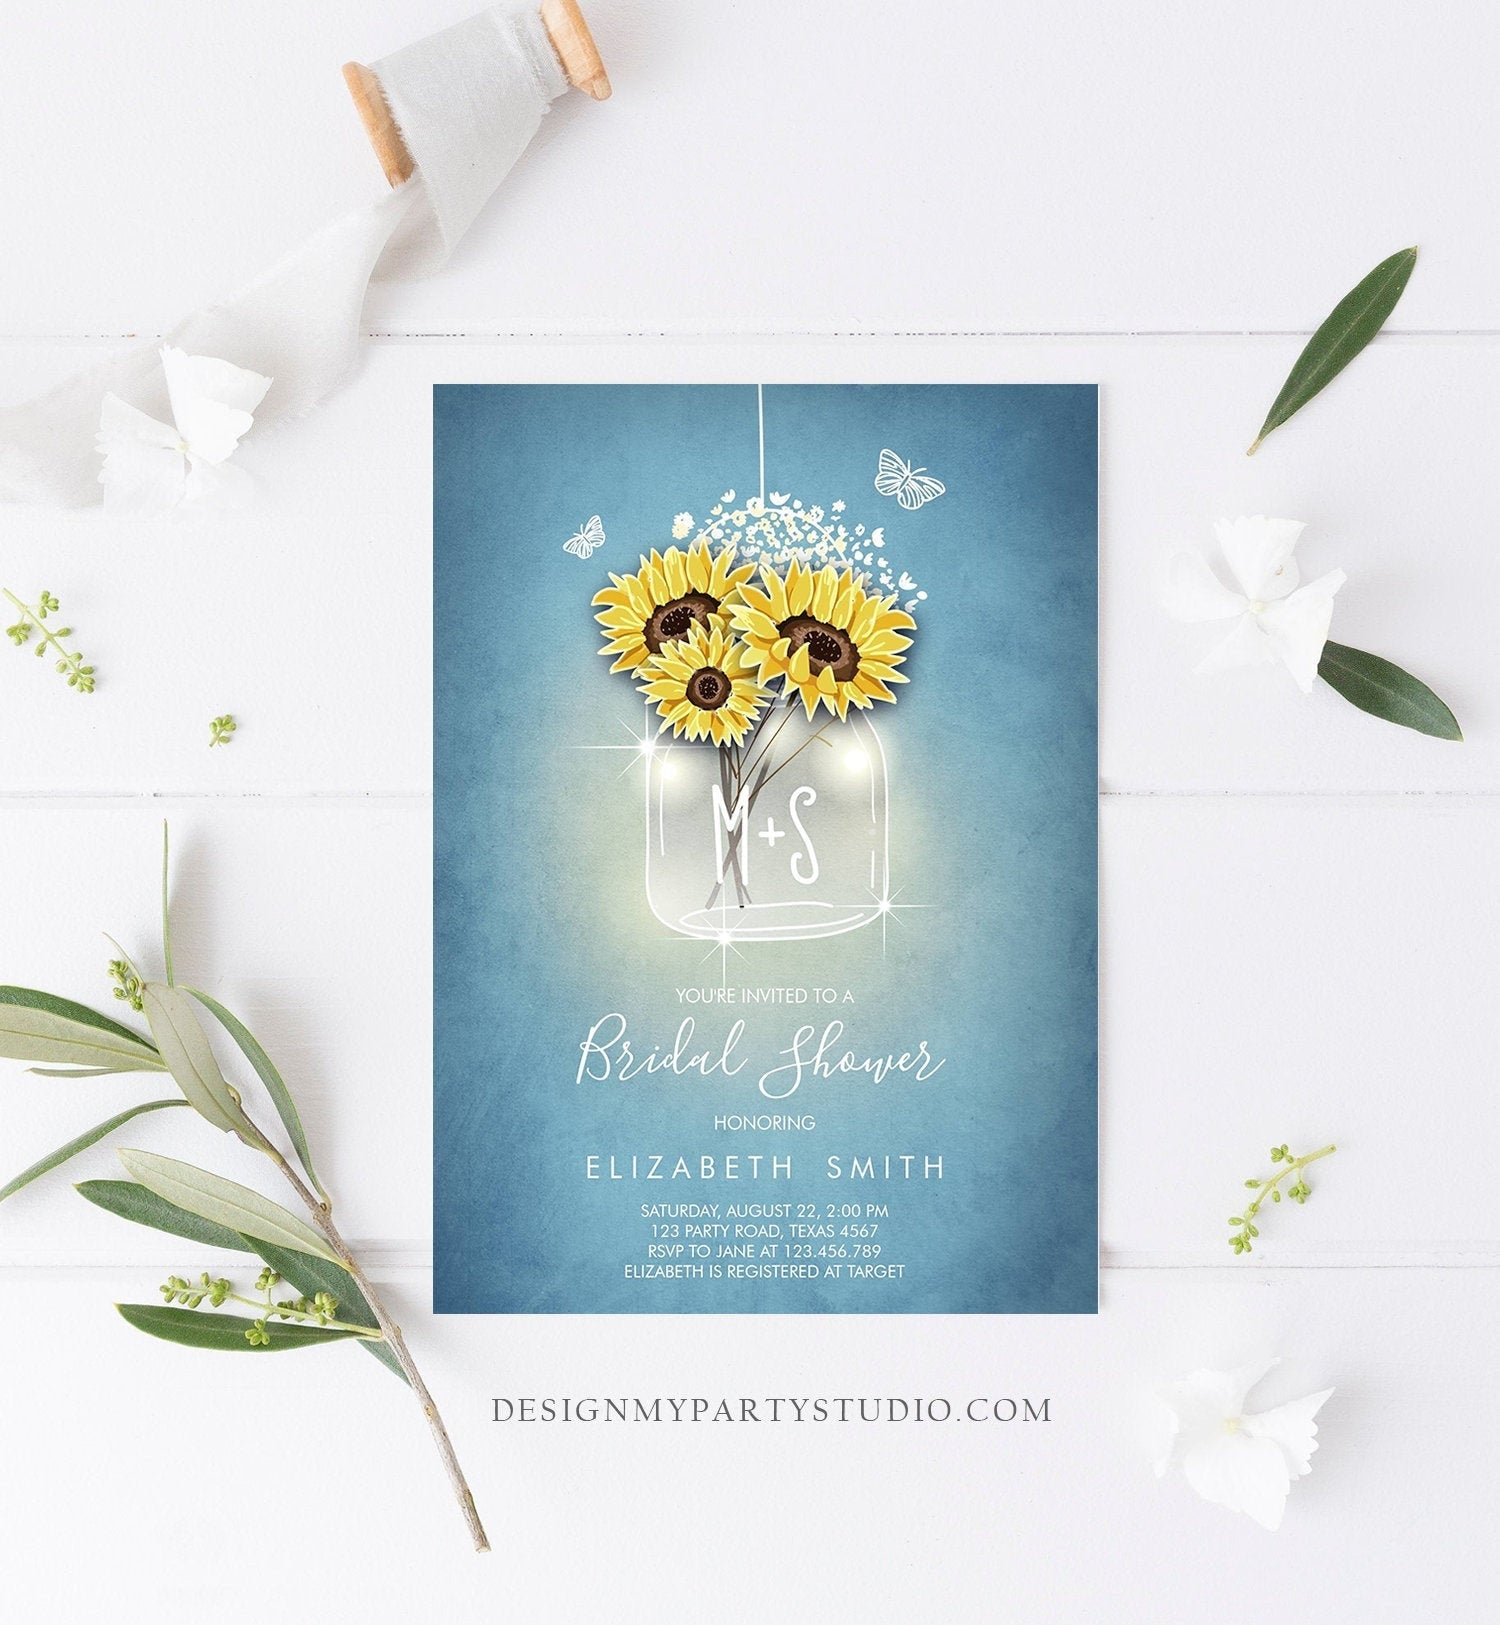 Editable Sunflowers Bridal Shower Invitation Rustic Sunflower Mason Jar Blue Spring Butterfly Download Printable Template Corjl Digital 0116